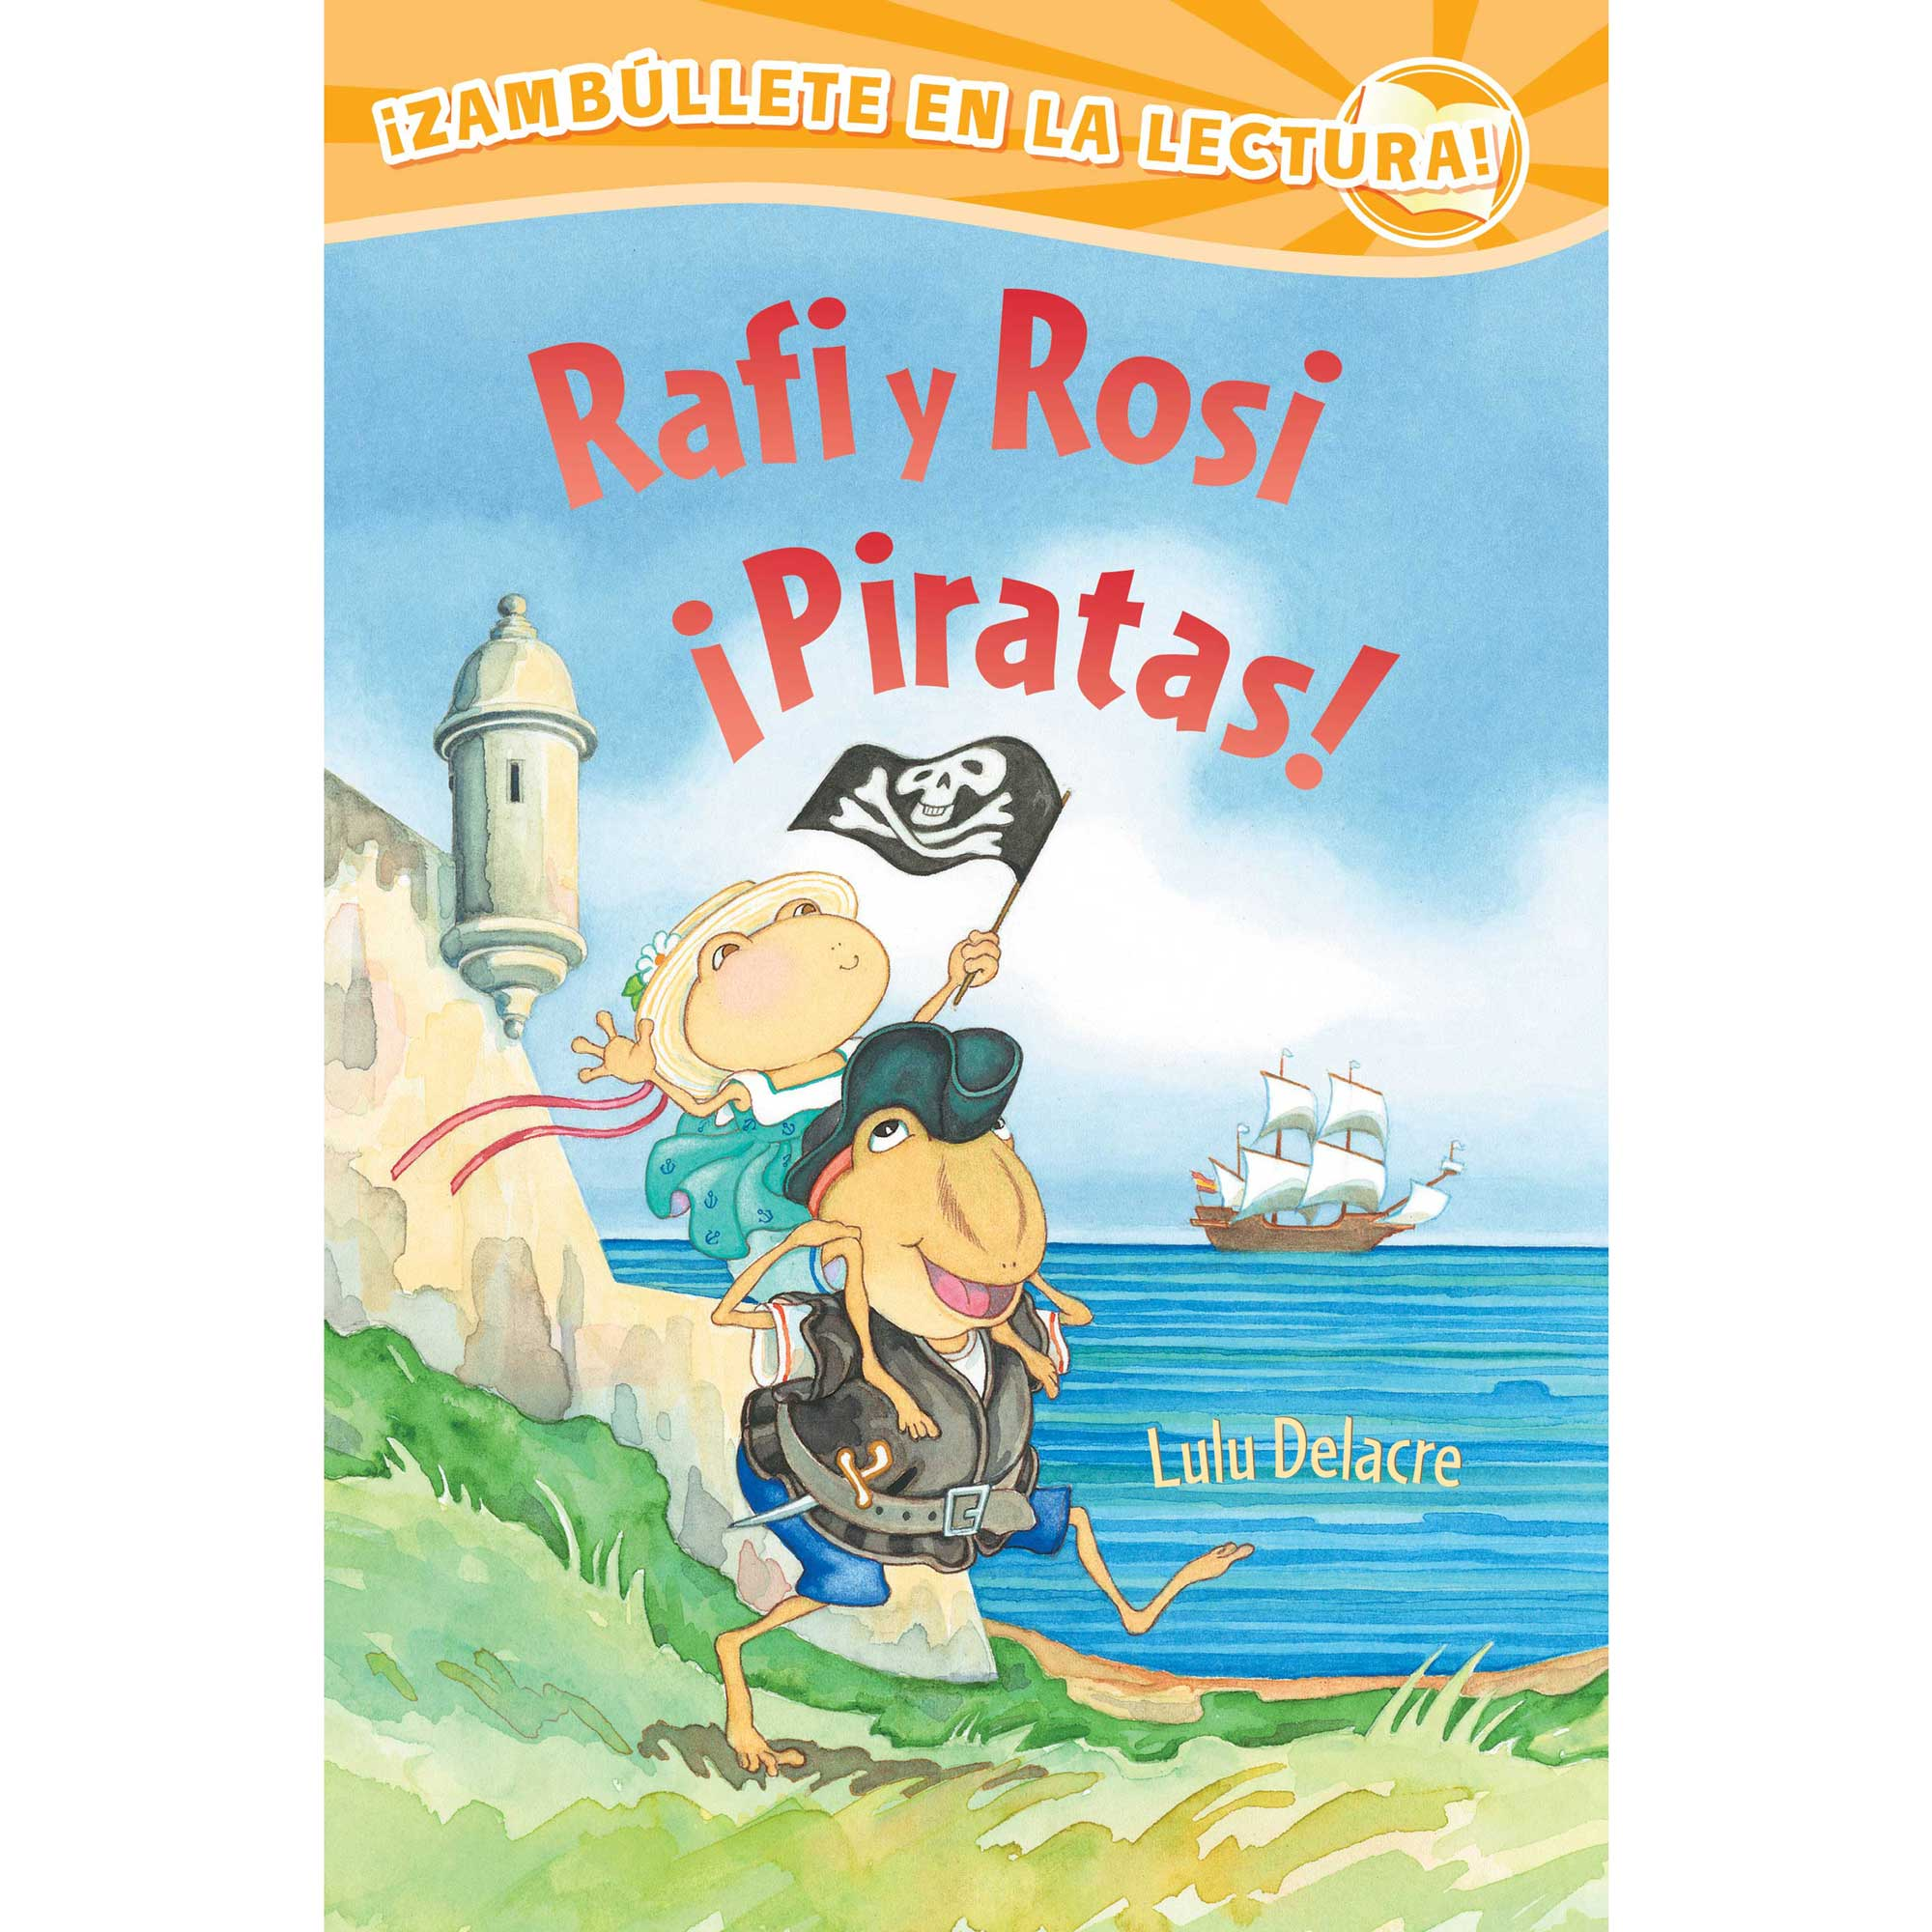 rafi and rosie pirates childrens book by lulu delacre